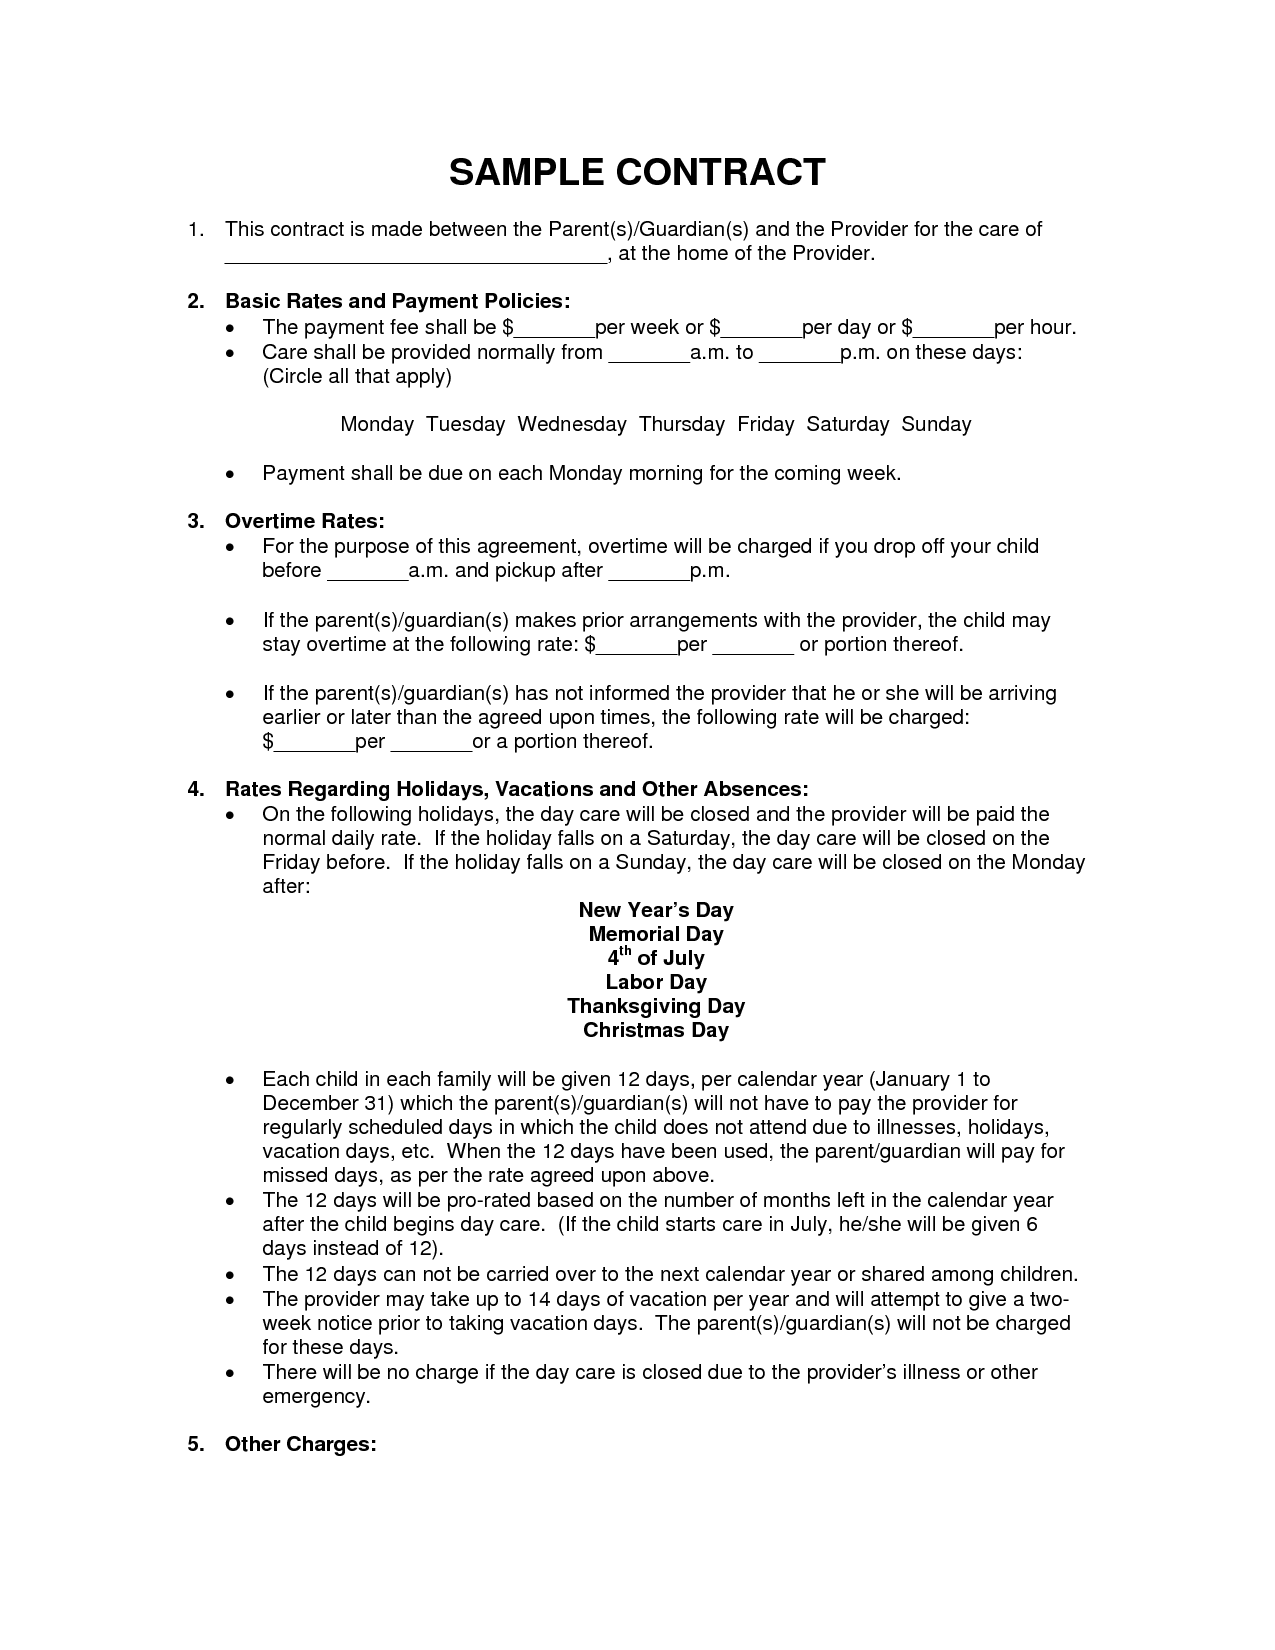 Child Care Employee Contract Printable  Childcare Forms